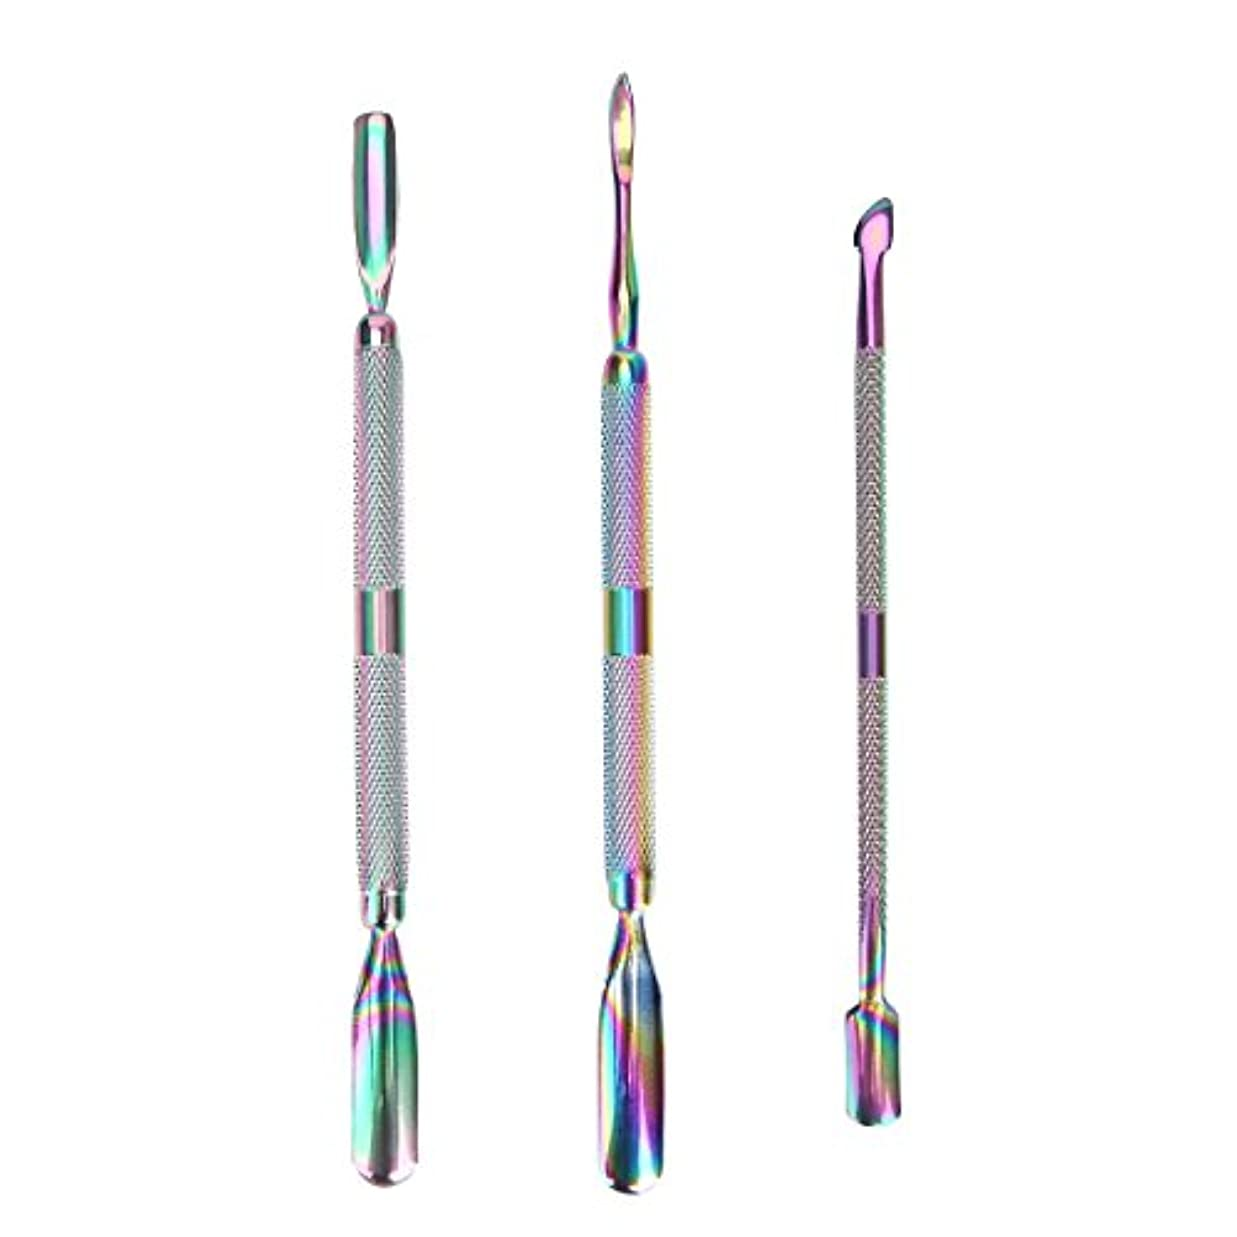 3 Pcs/set Rainbow Stainless Steel Dual End Nail Art Dead Skin Cuticle Remover Pusher Spoon Pedicure Manicure Care...